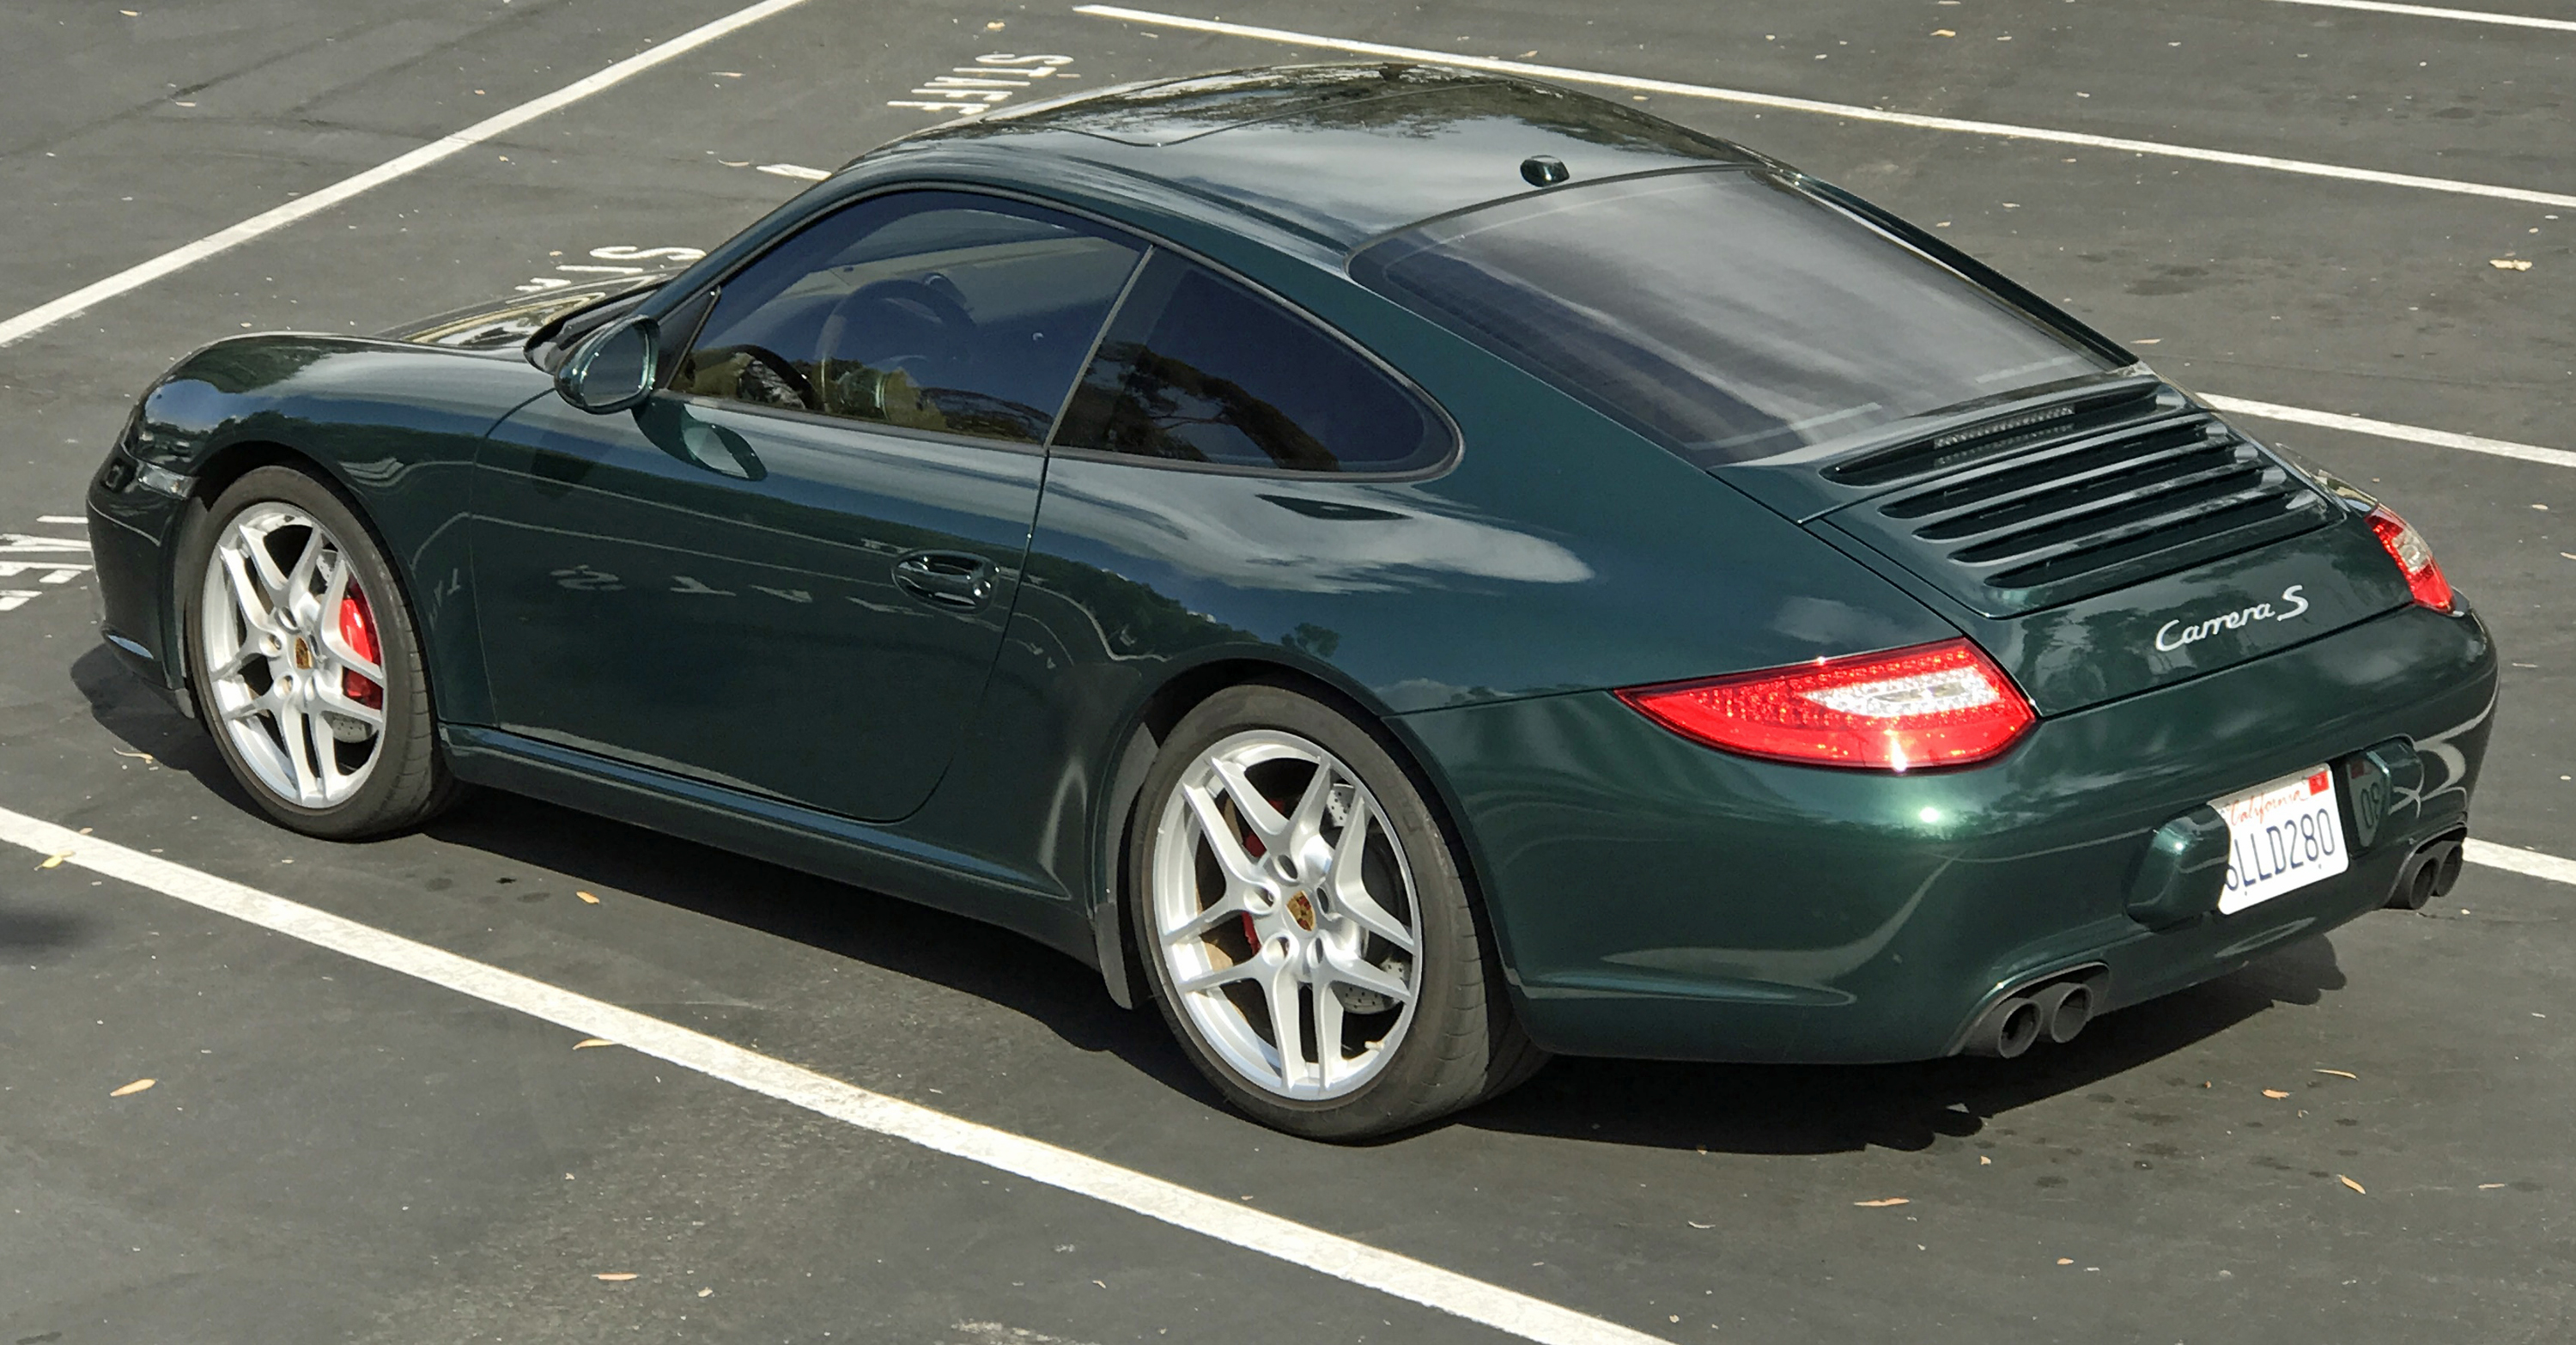 2009 Porsche 911 Carerra S Rear Profile